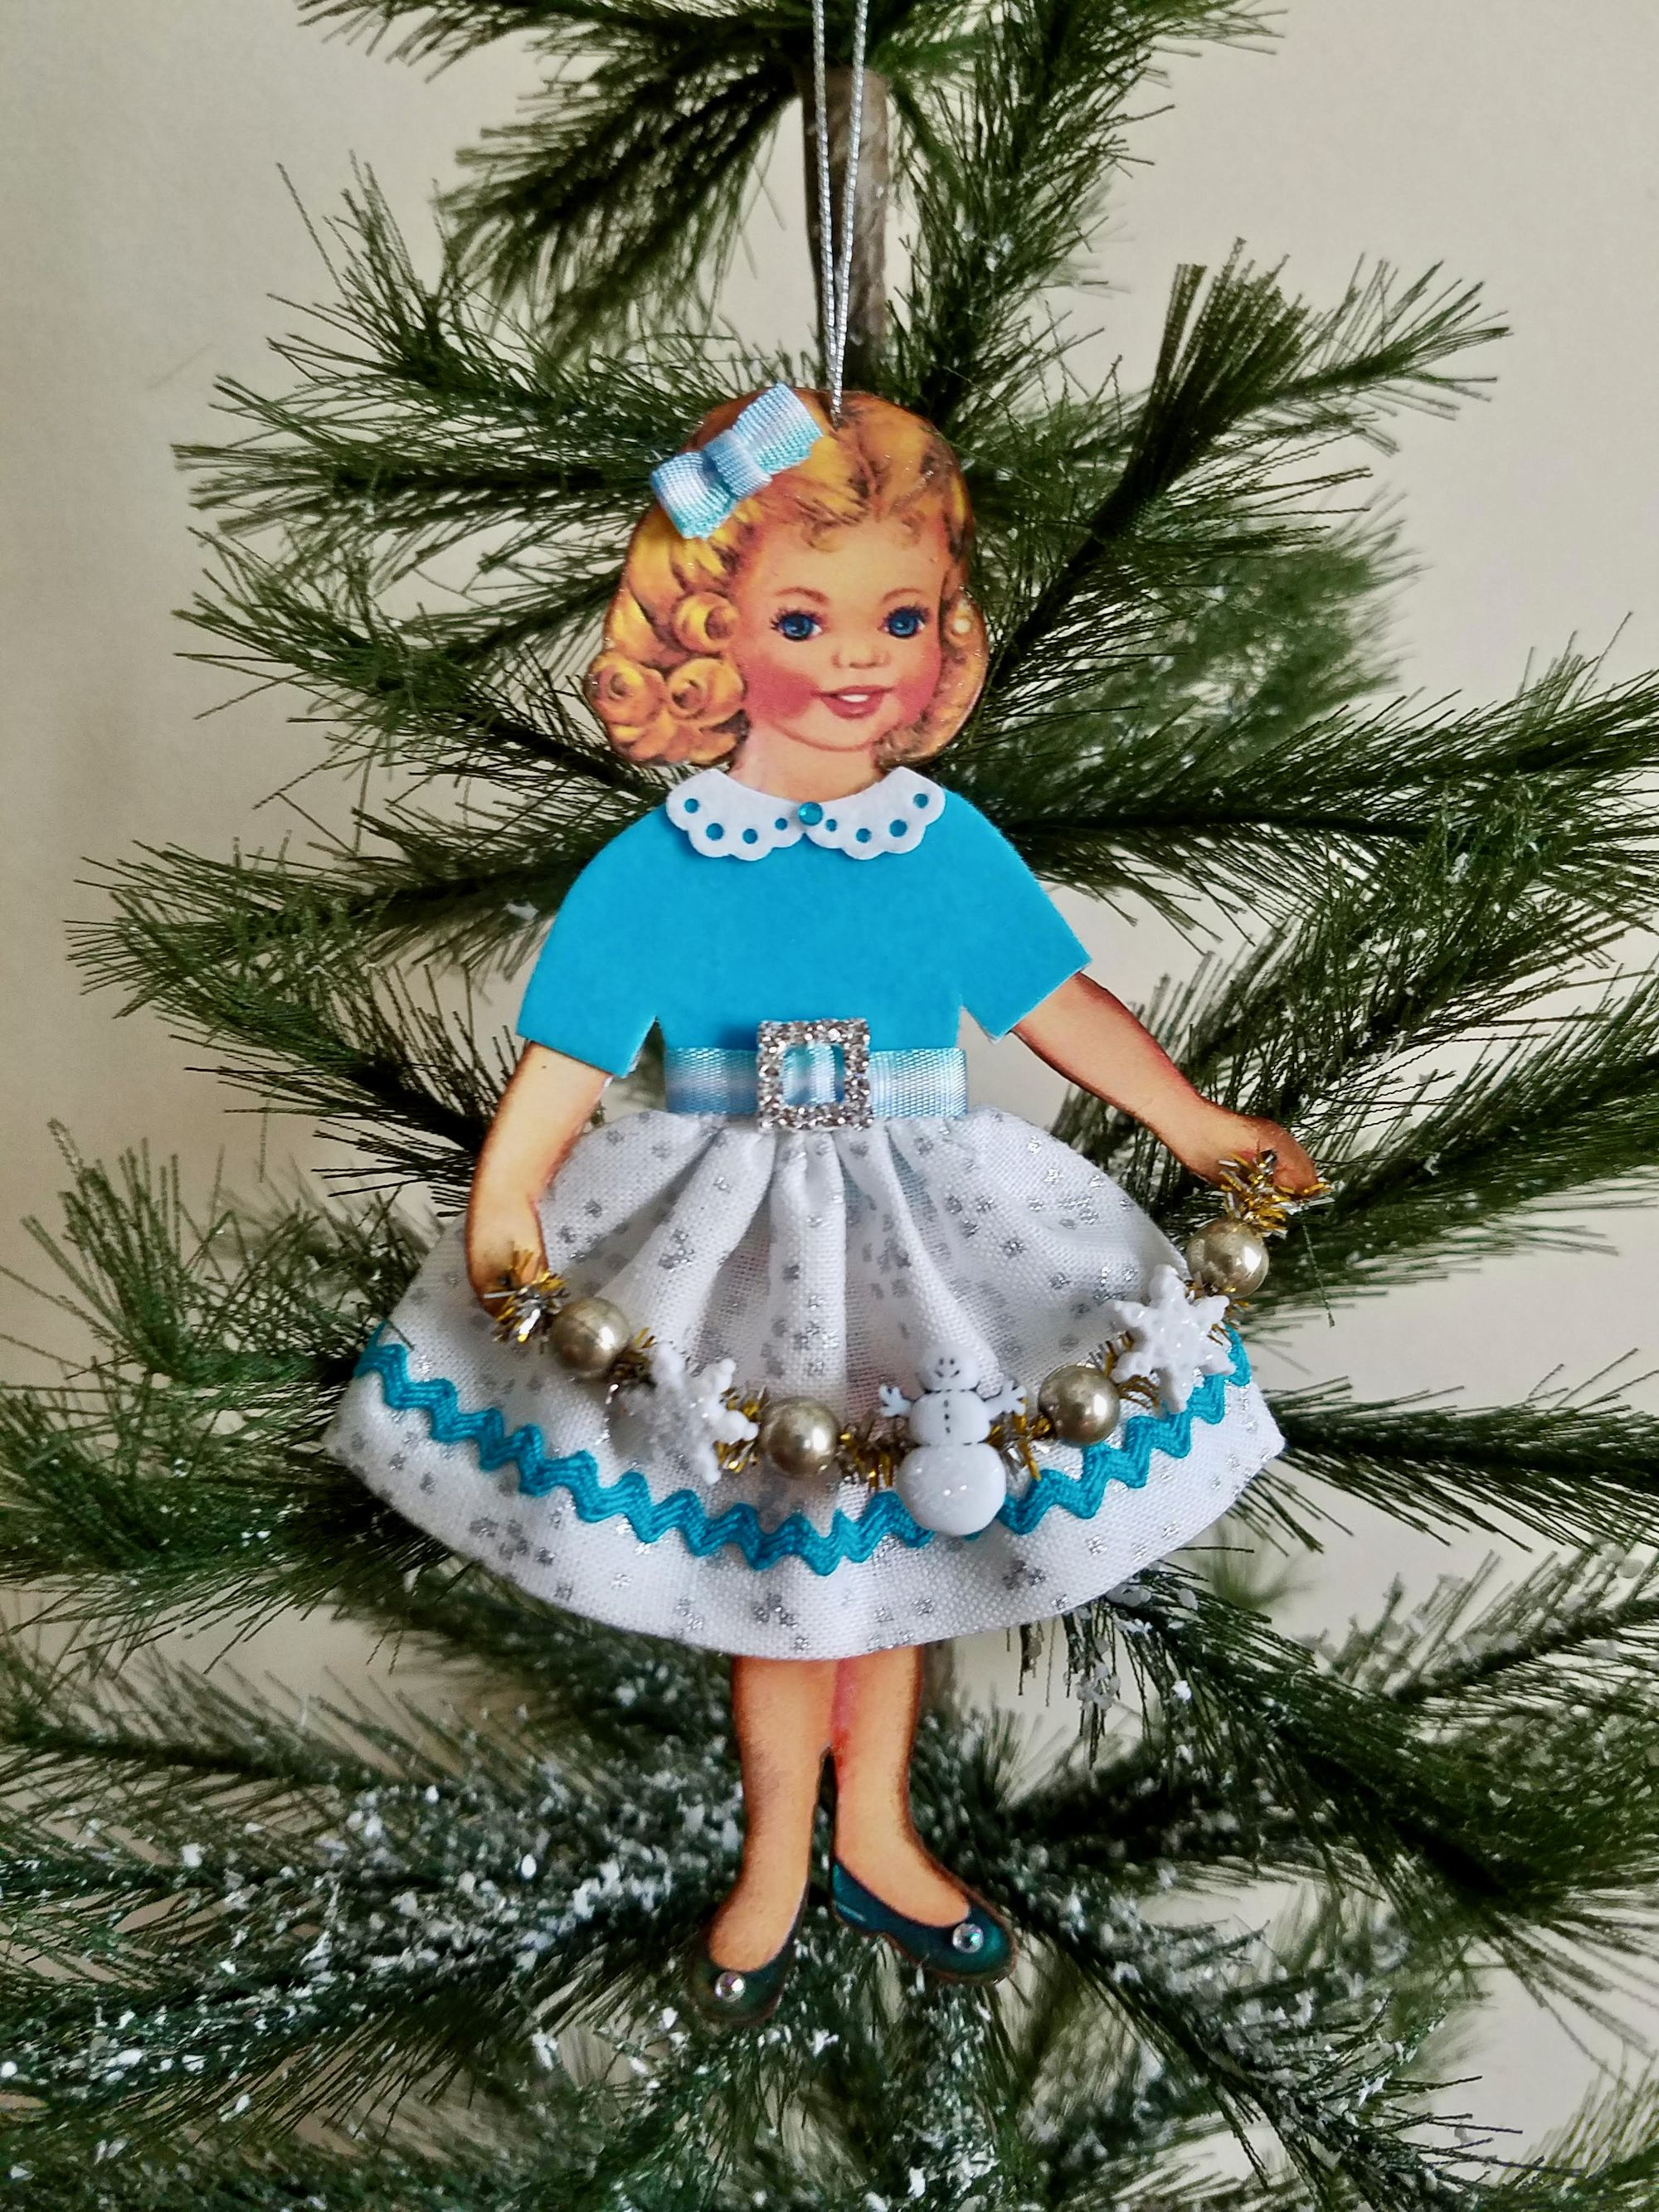 Handmade retro '50's paper doll ornament holding a tinsel